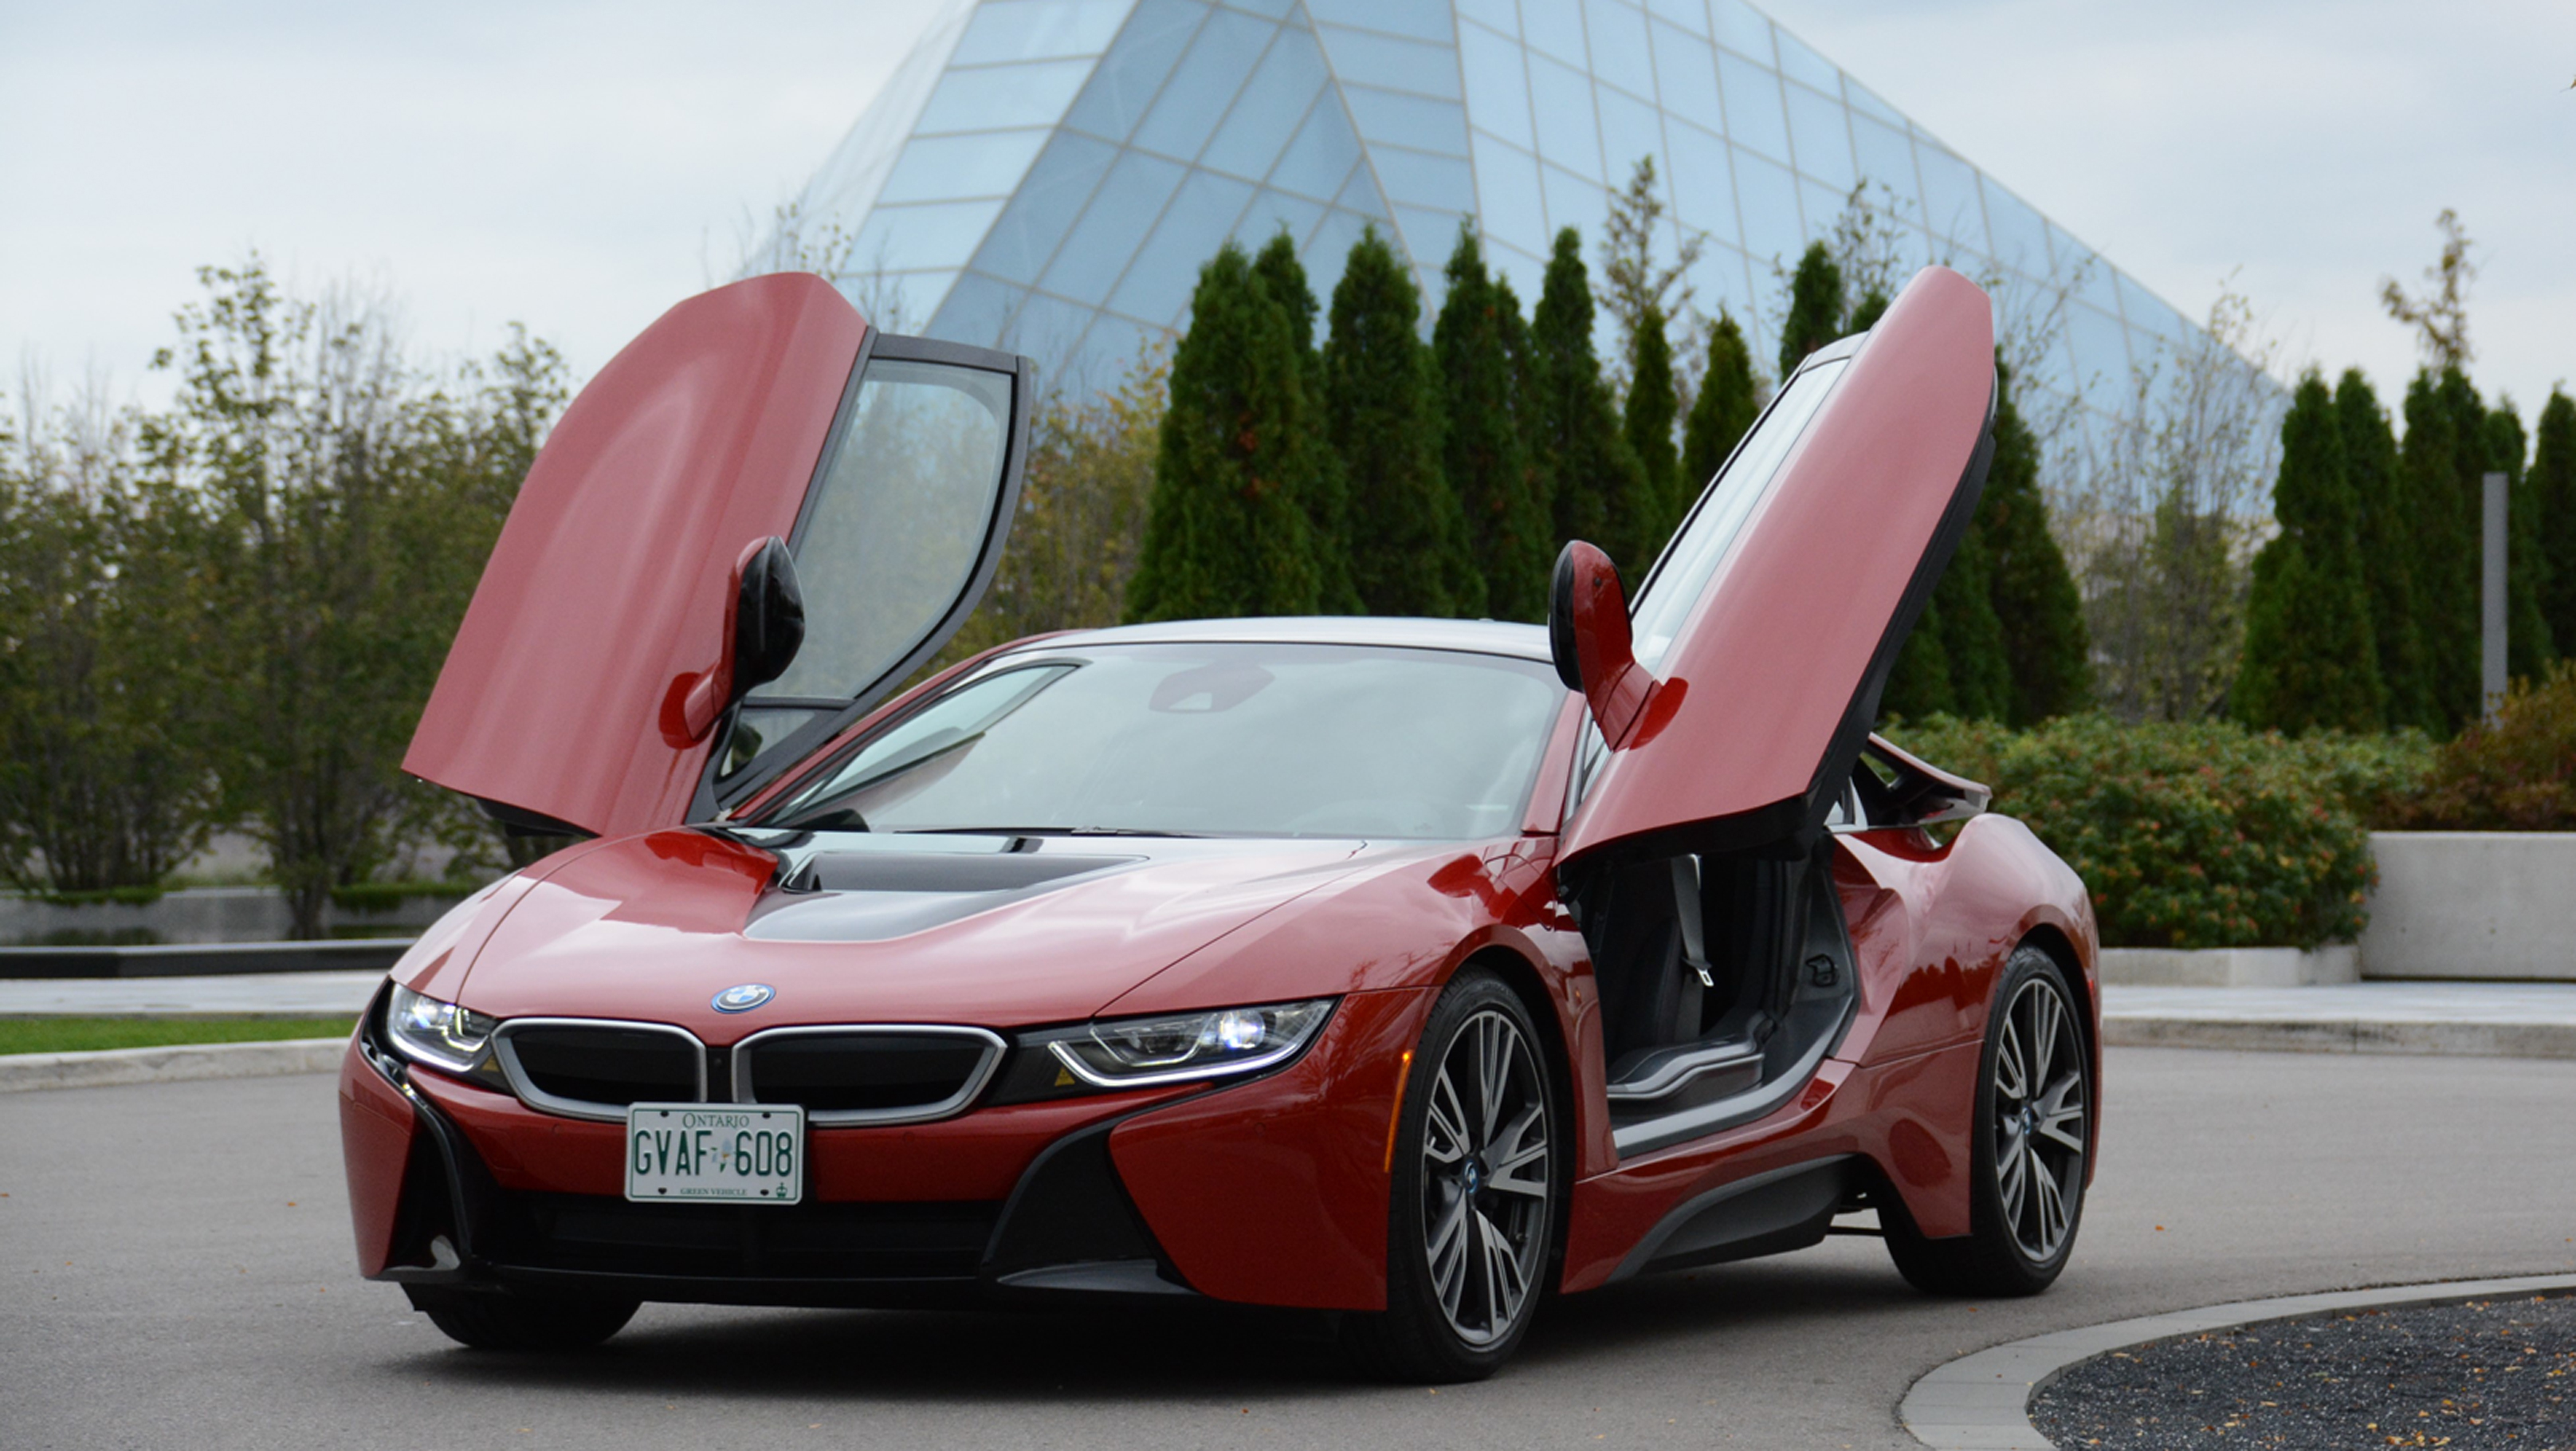 2017 Bmw I8 Protonic Red Edition Plug In Hybrid Review Wheels Ca